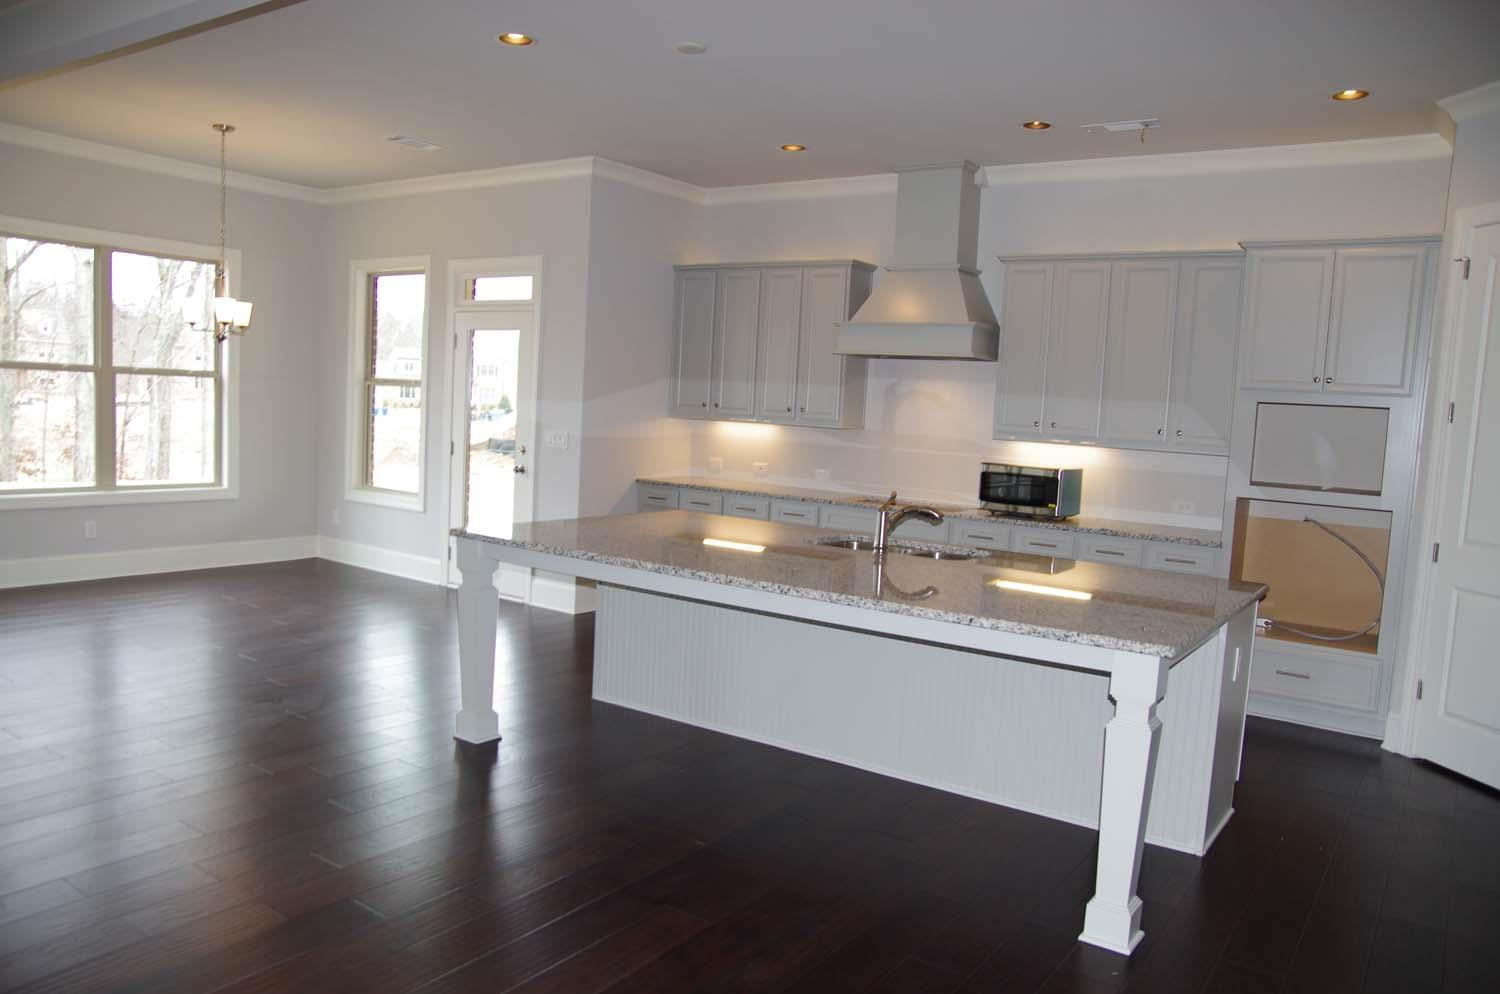 Kitchen featured in the Prescot By Chafin Communities in Atlanta, GA